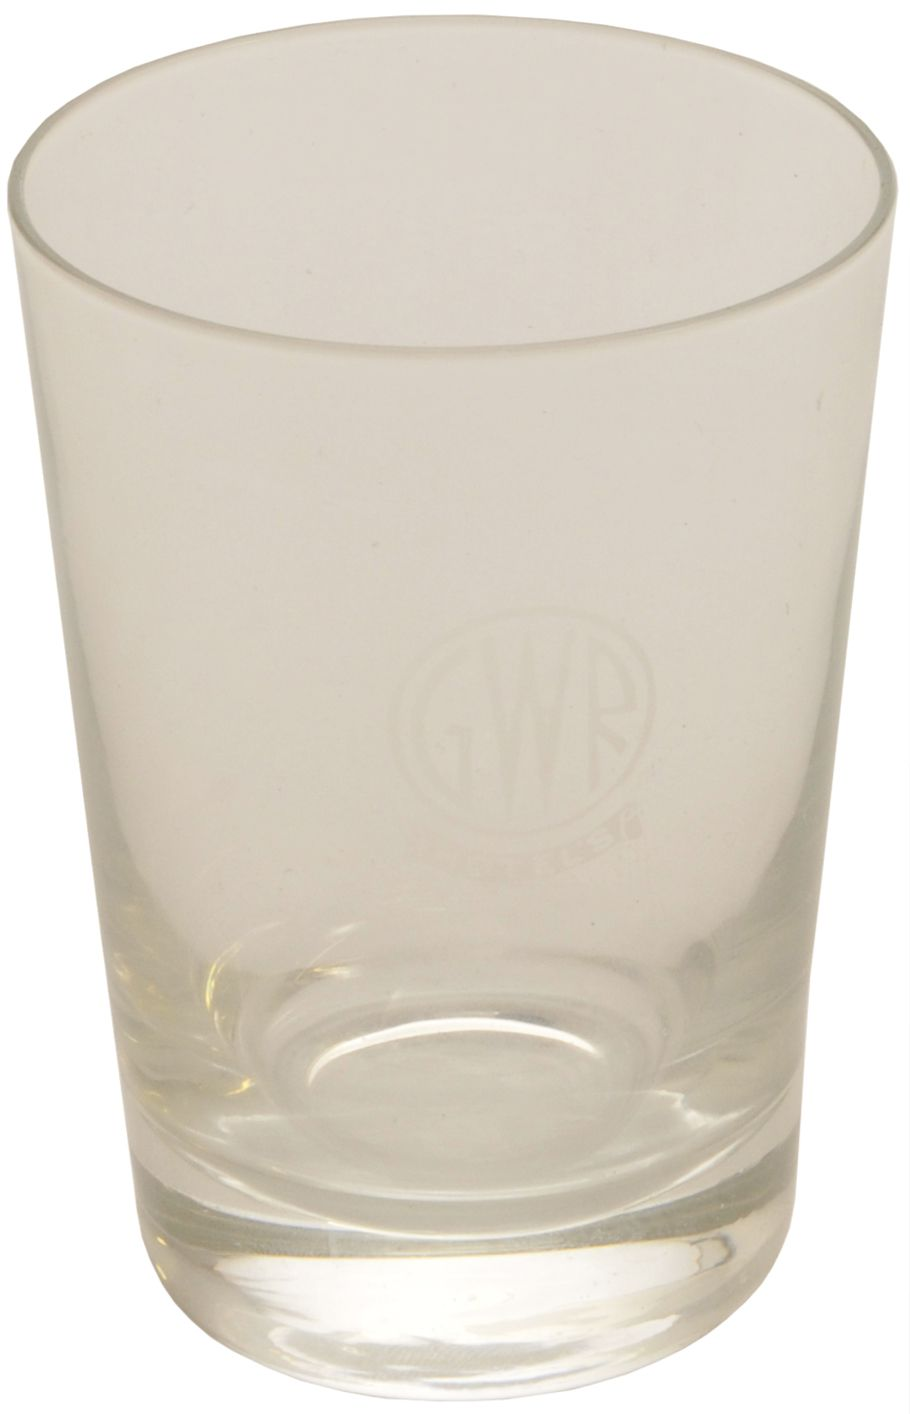 Lot 11 - Glassware, GWR Hotels Whisky Tot: A GWR Hotels whisky glass, 3½'' tall, the side marked with the